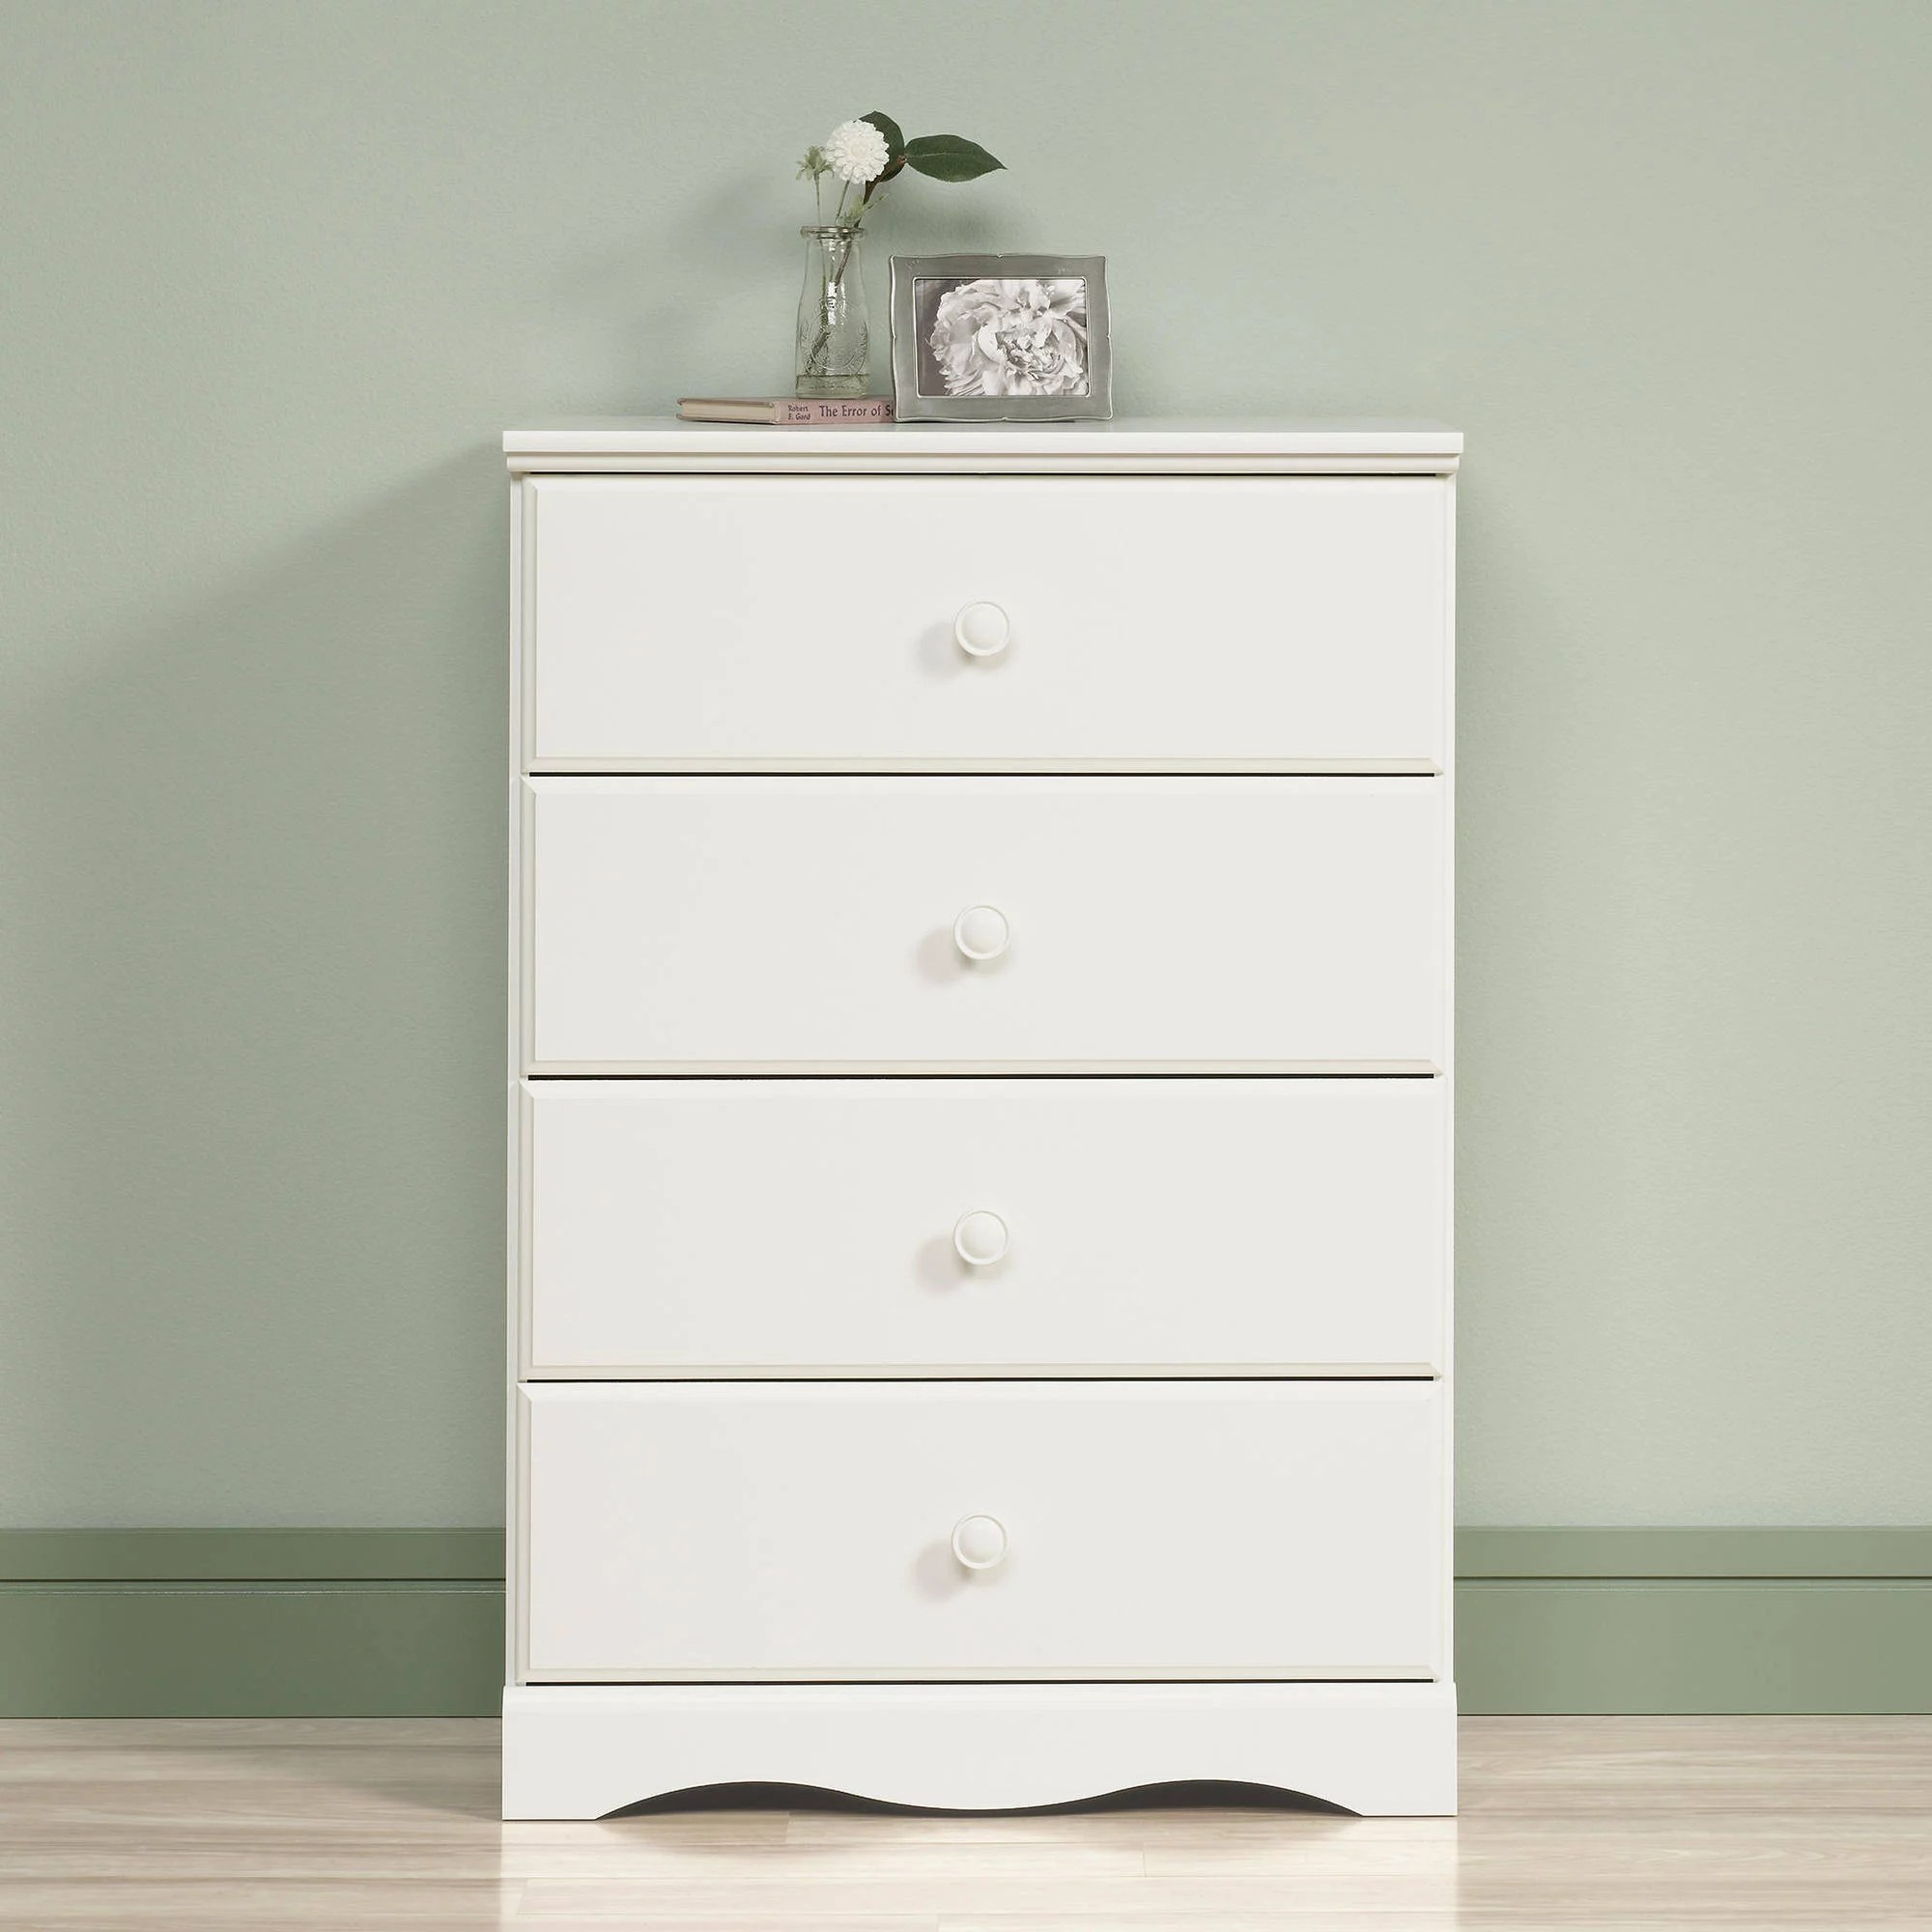 6 Drawer Chest Of Drawers Sauder Storybook 4 Drawer Dresser Multiple Finishes